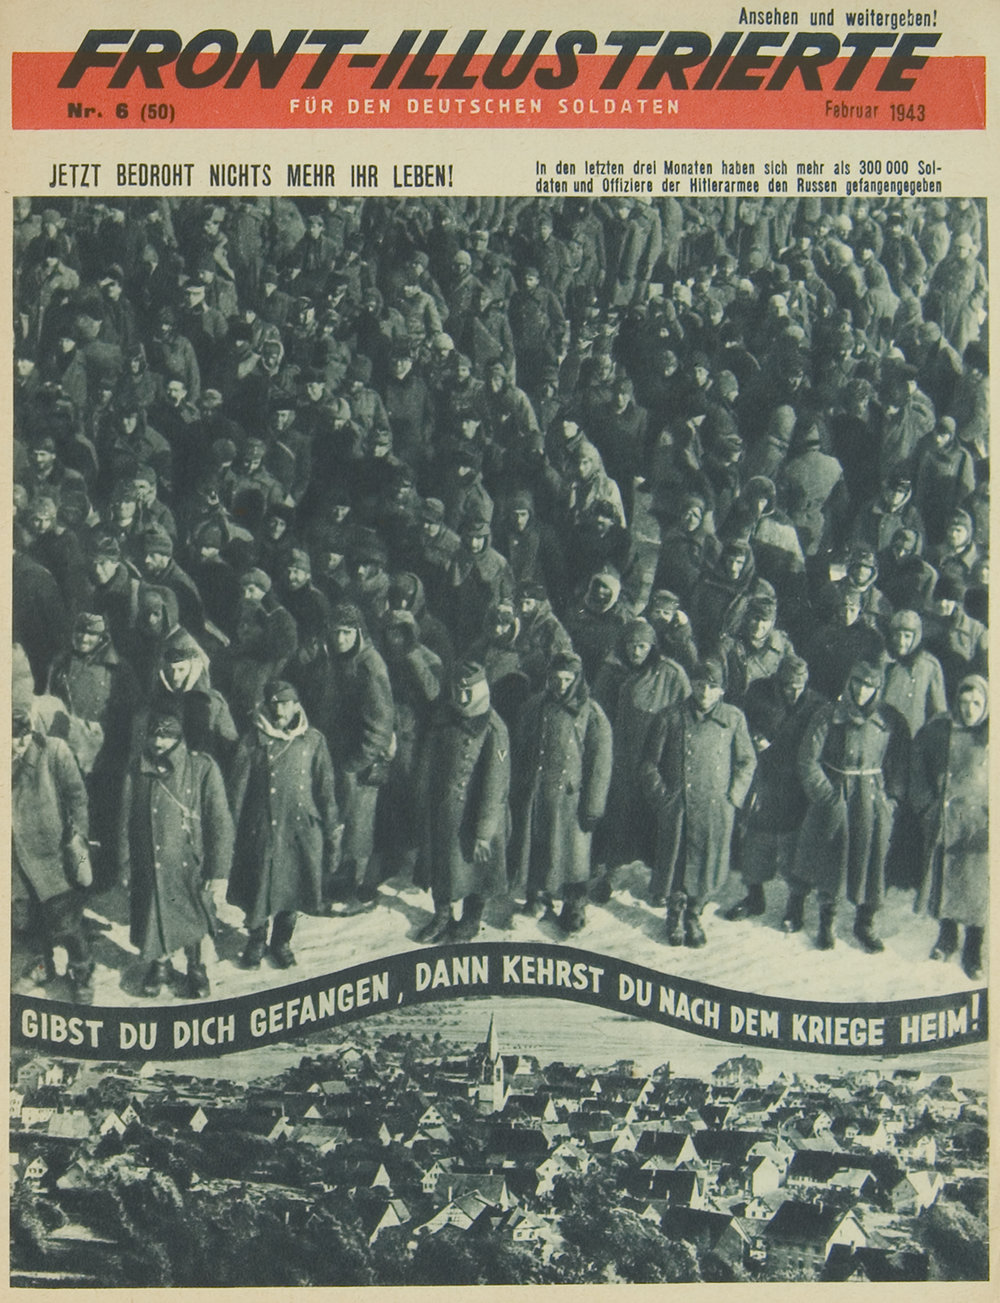 """Front-Illustrierte,"" No. 6 (50), February 1943"